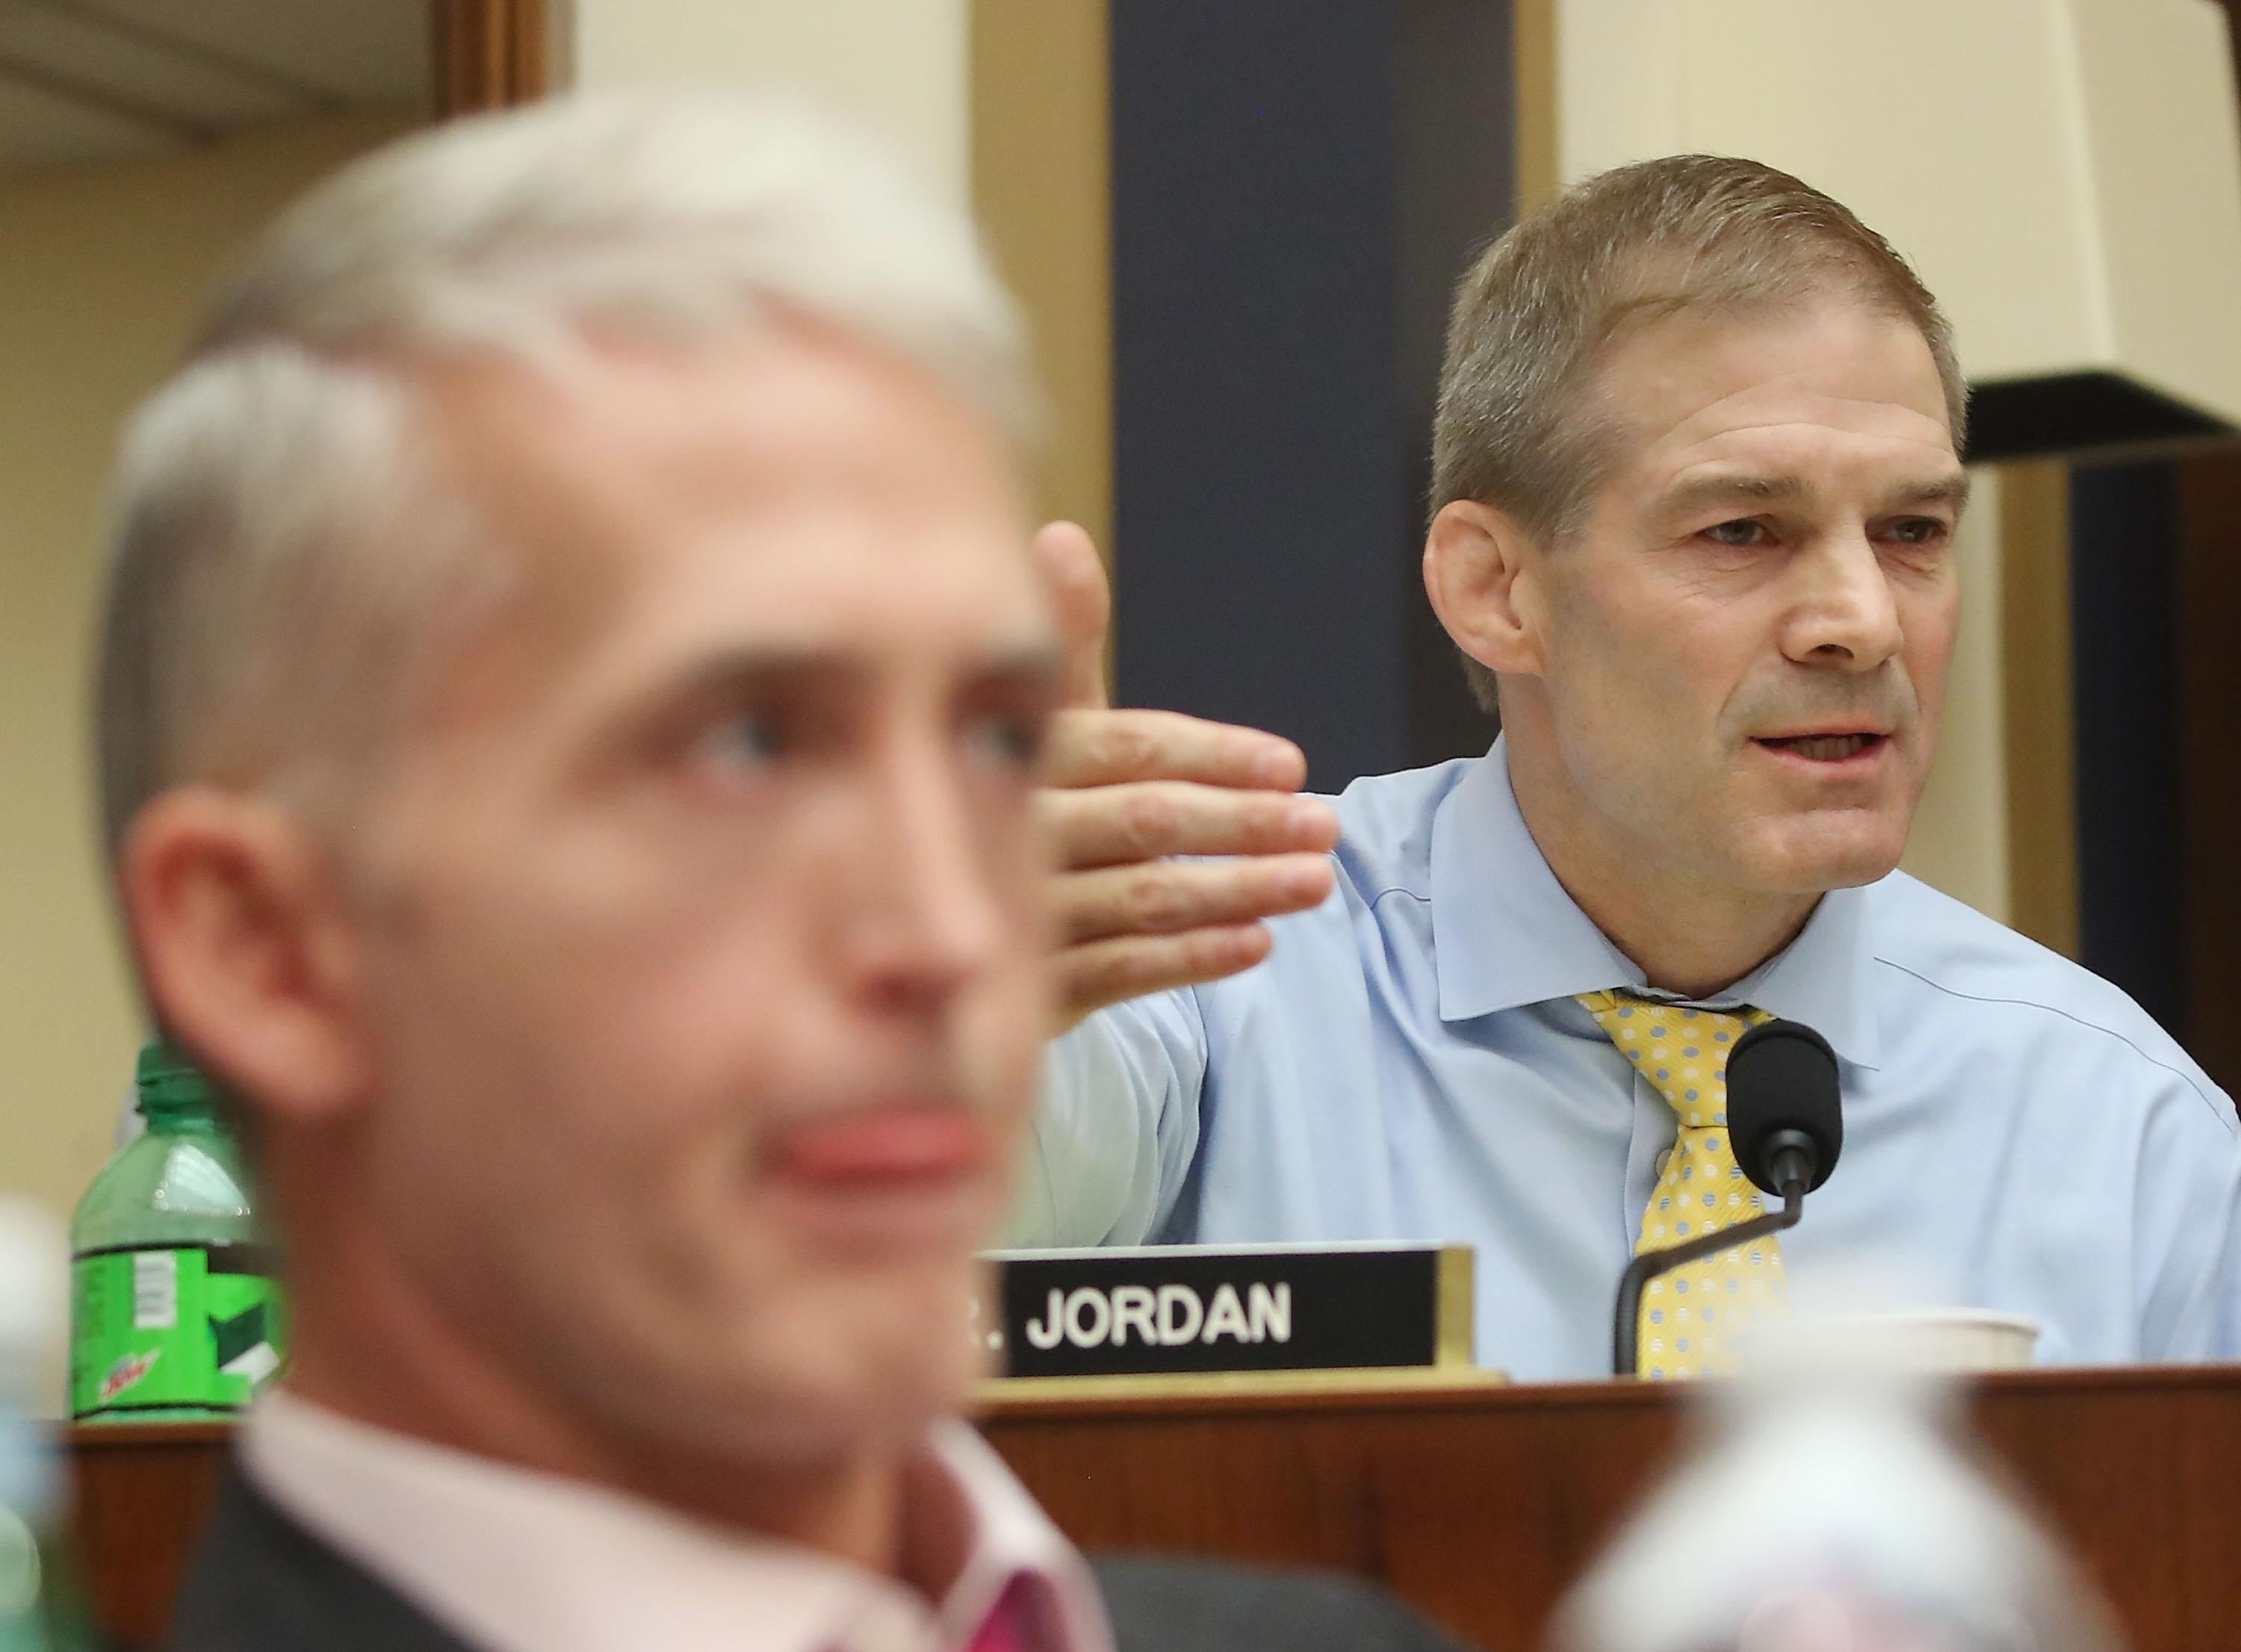 Reps. Trey Gowdy, left, and Jim Jordan listen during a House Judiciary Committee hearing